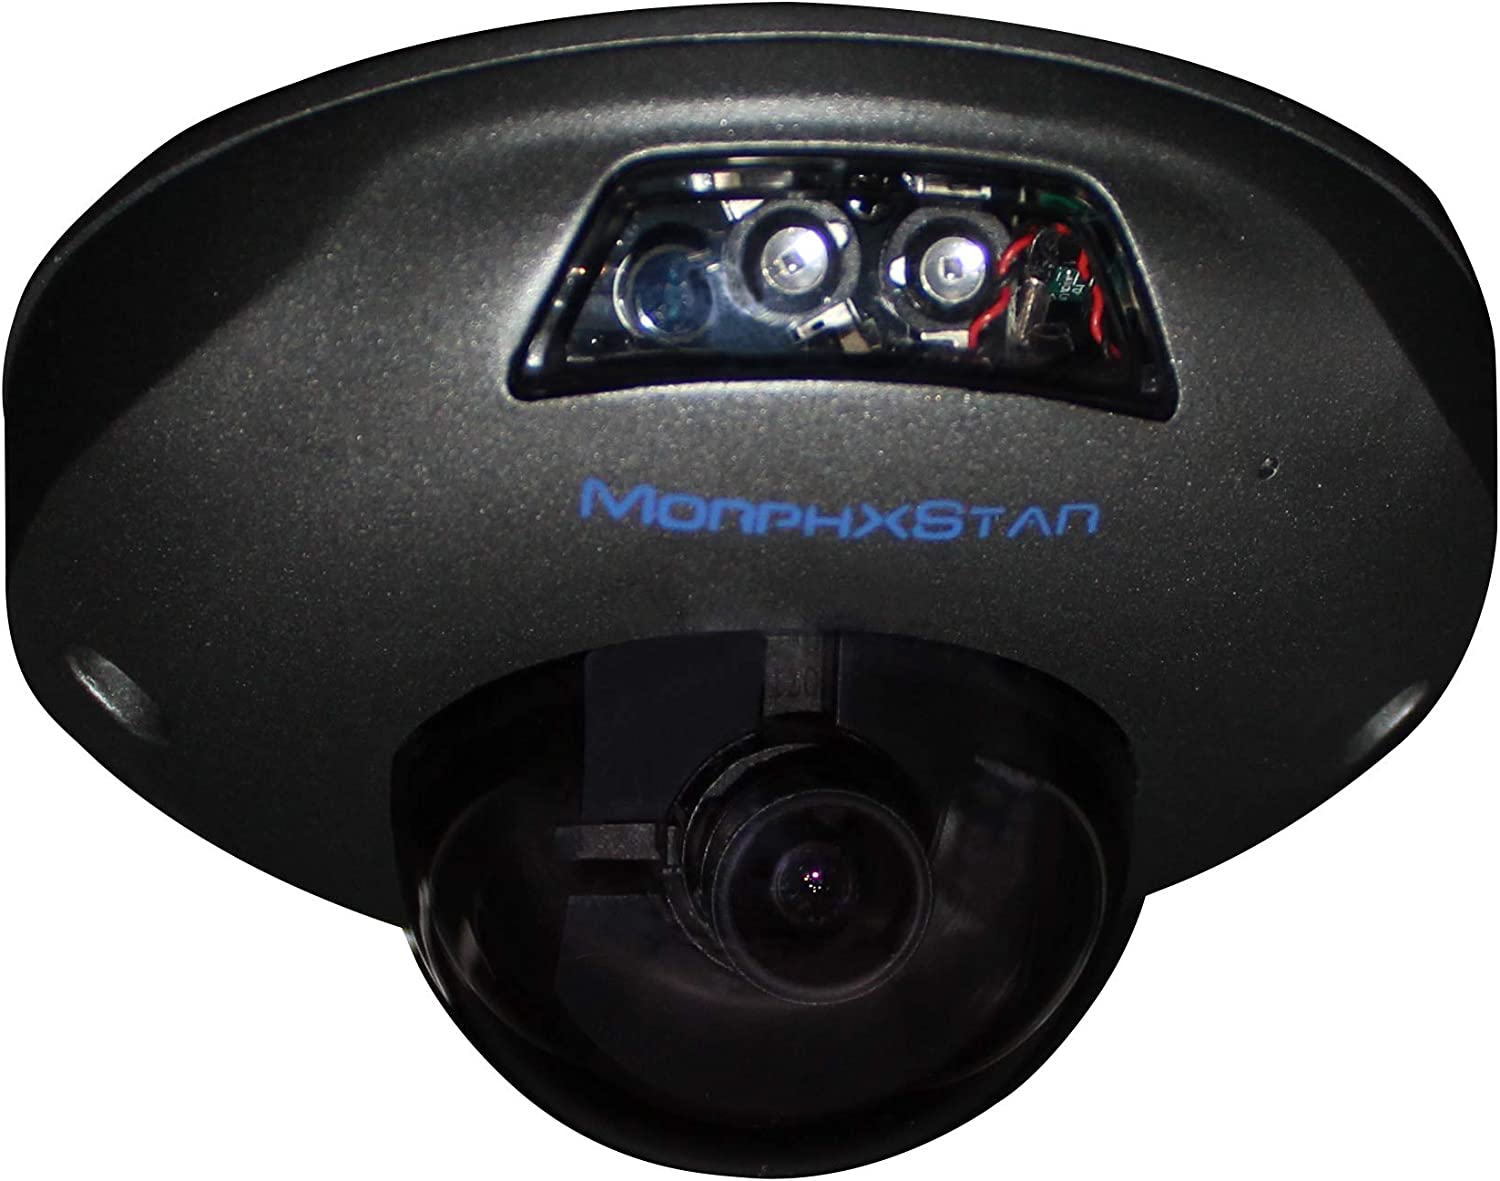 MorphXStar Security 8 Megapixel 4K 2.8 mm; Wide Viewing Angle: 120° Lens IK10 Vandalproof Onvif H.265 8MP Mini Dome PoE IP Camera, 80FT Night Vision - UFOX4K Space Grey